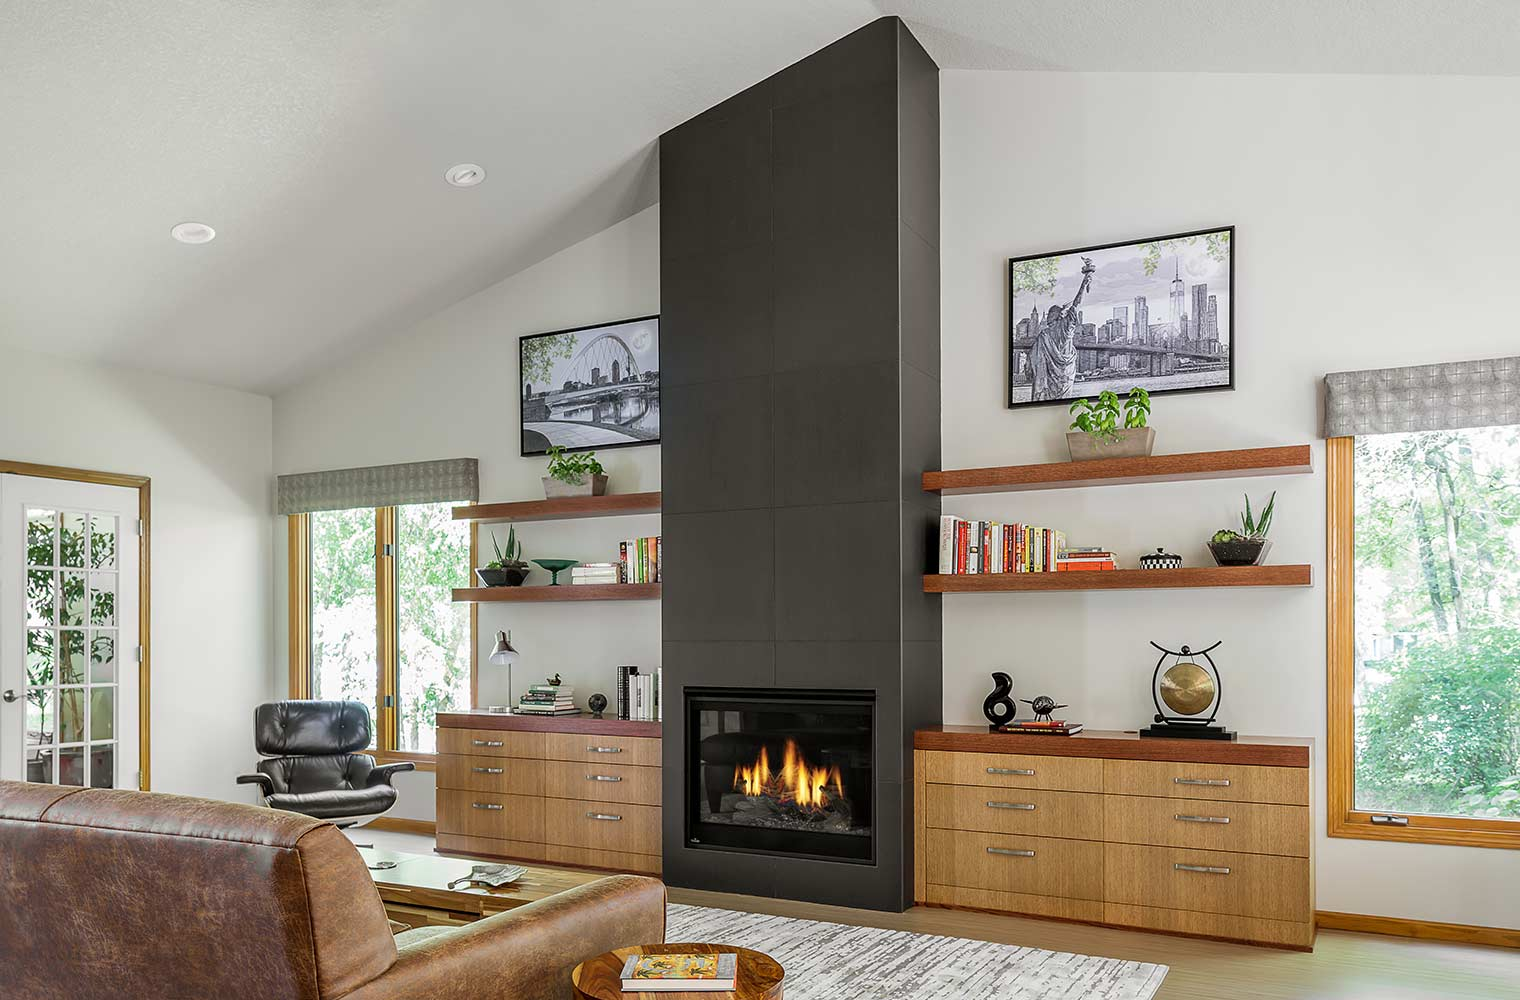 Fireplace Design Ideas Hot Ways To Rethink A Powerful Focal